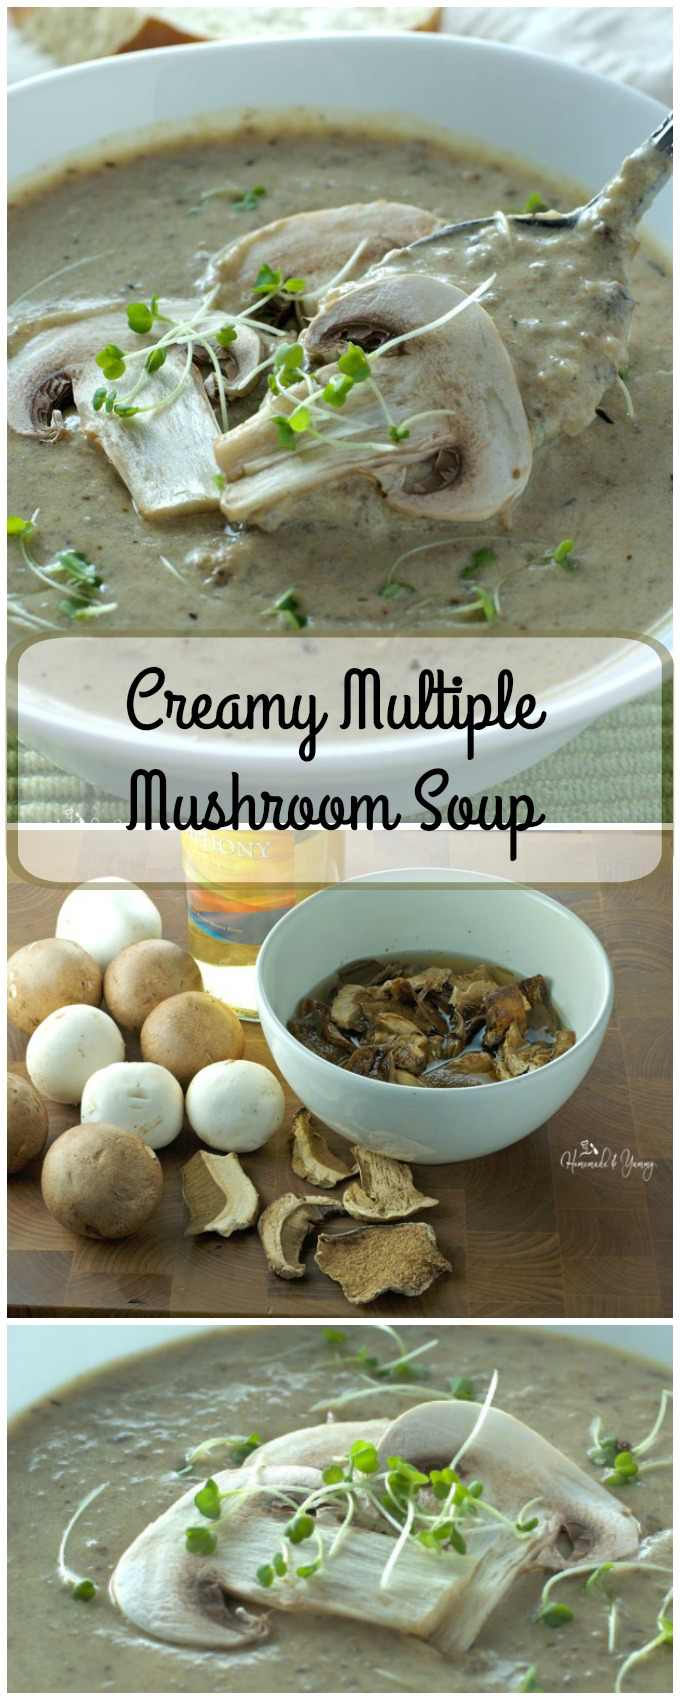 Creamy Multiple Mushroom Soup long pin image.